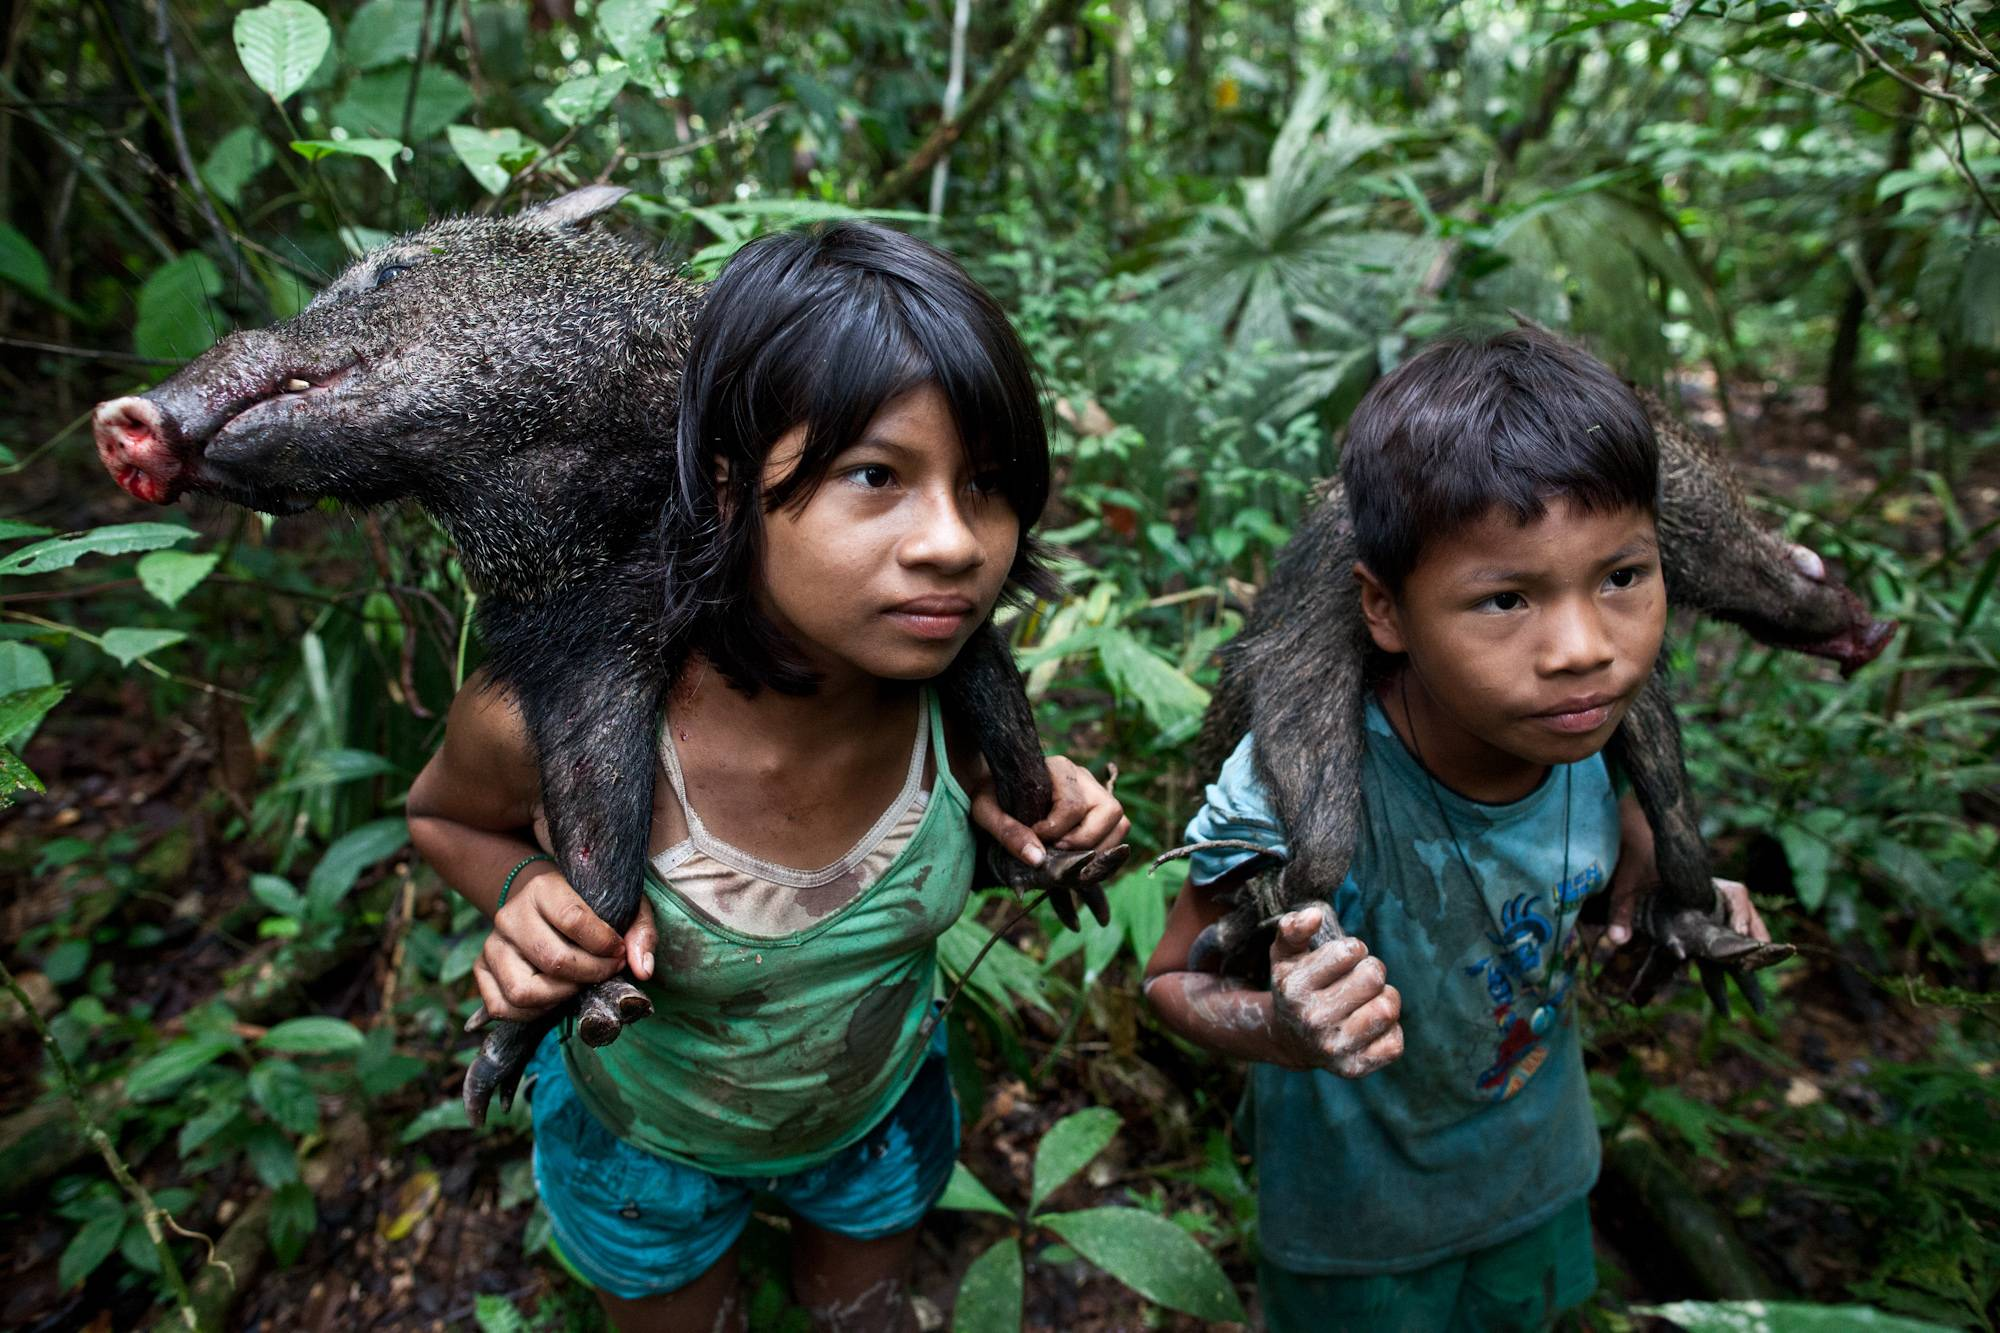 Uncontacted Amazon Tribes Isolated Tribes Of The Amazon